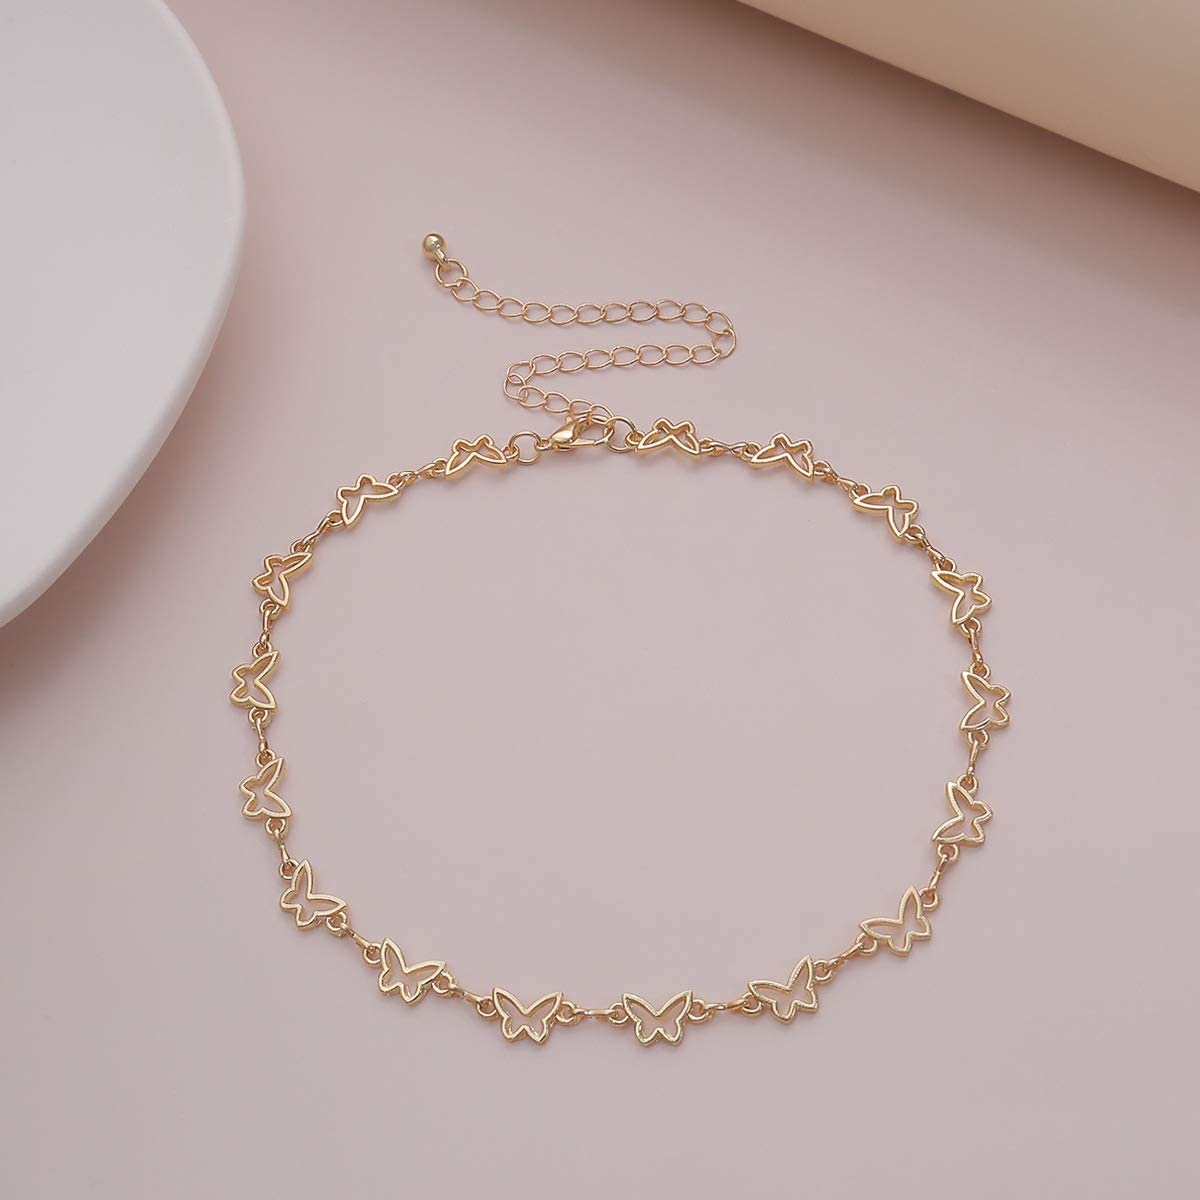 Konpicca 18K Real Gold Plated Chain Choker Necklace Hollow Tiny Butterfly Lucky Heart Link Necklace Minimalist Punk Clavicle Jewelry for Women